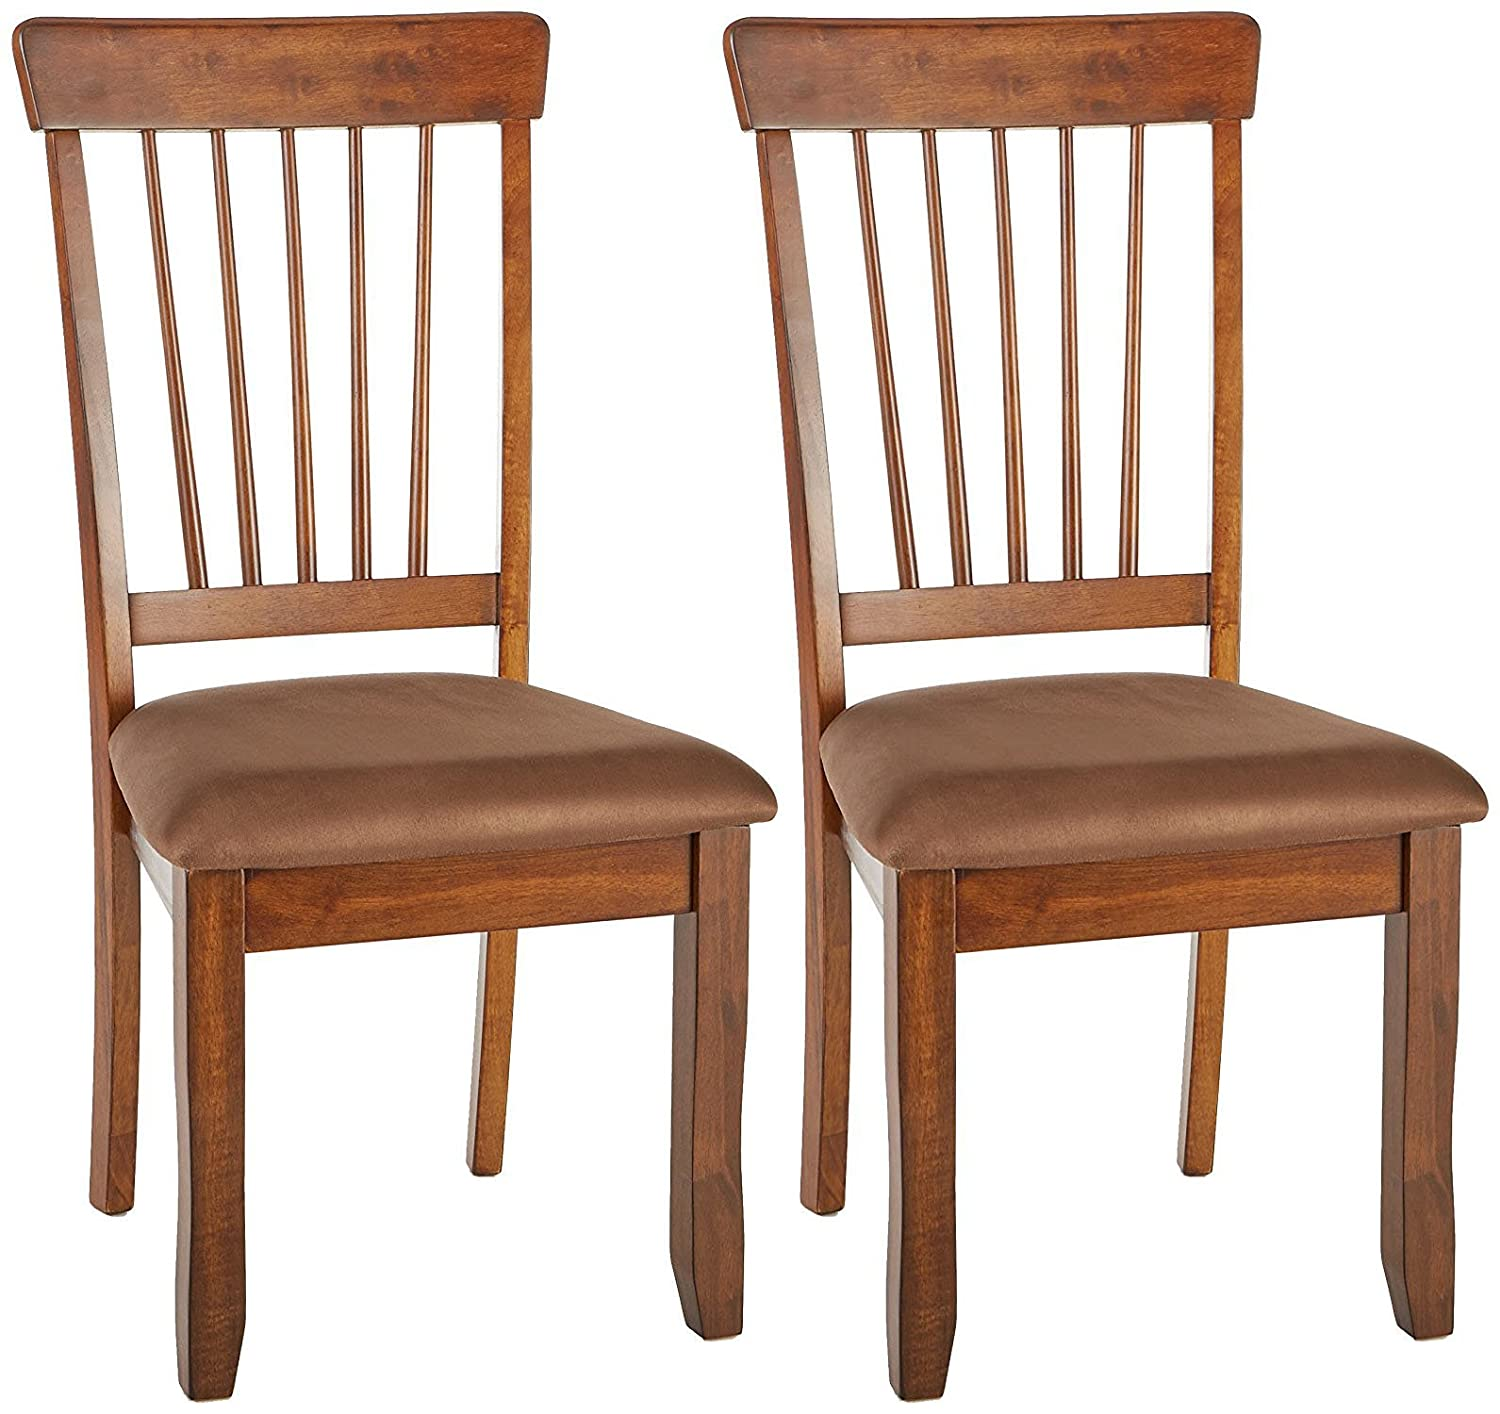 Ashley Furniture Signature Design – Berringer Dining Side Chair – Spindle Back – Set of 2 – Hickory Stain Finish